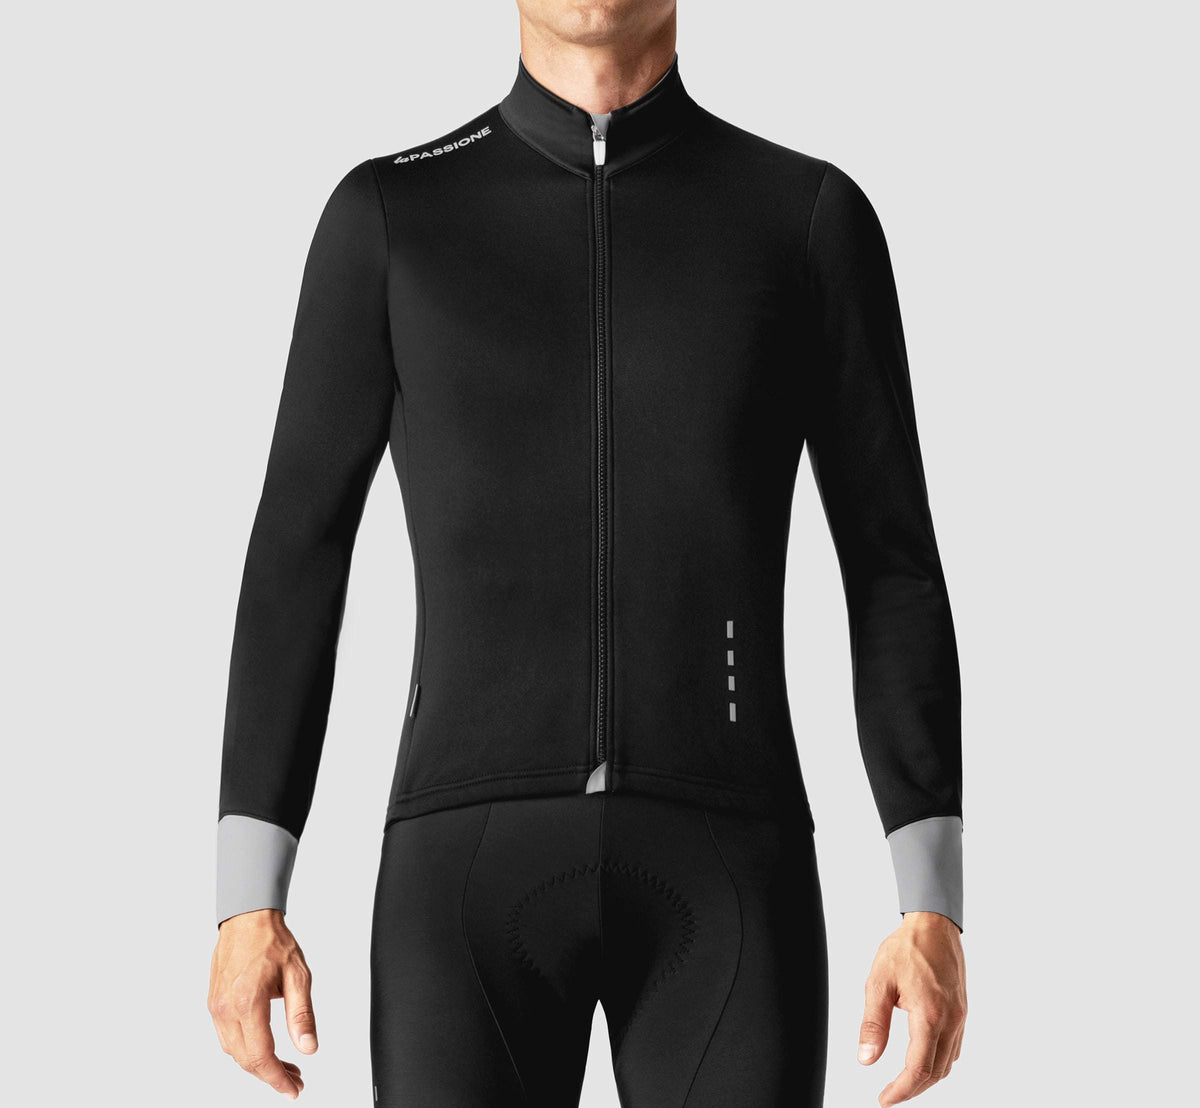 PSN Windproof Jersey Black